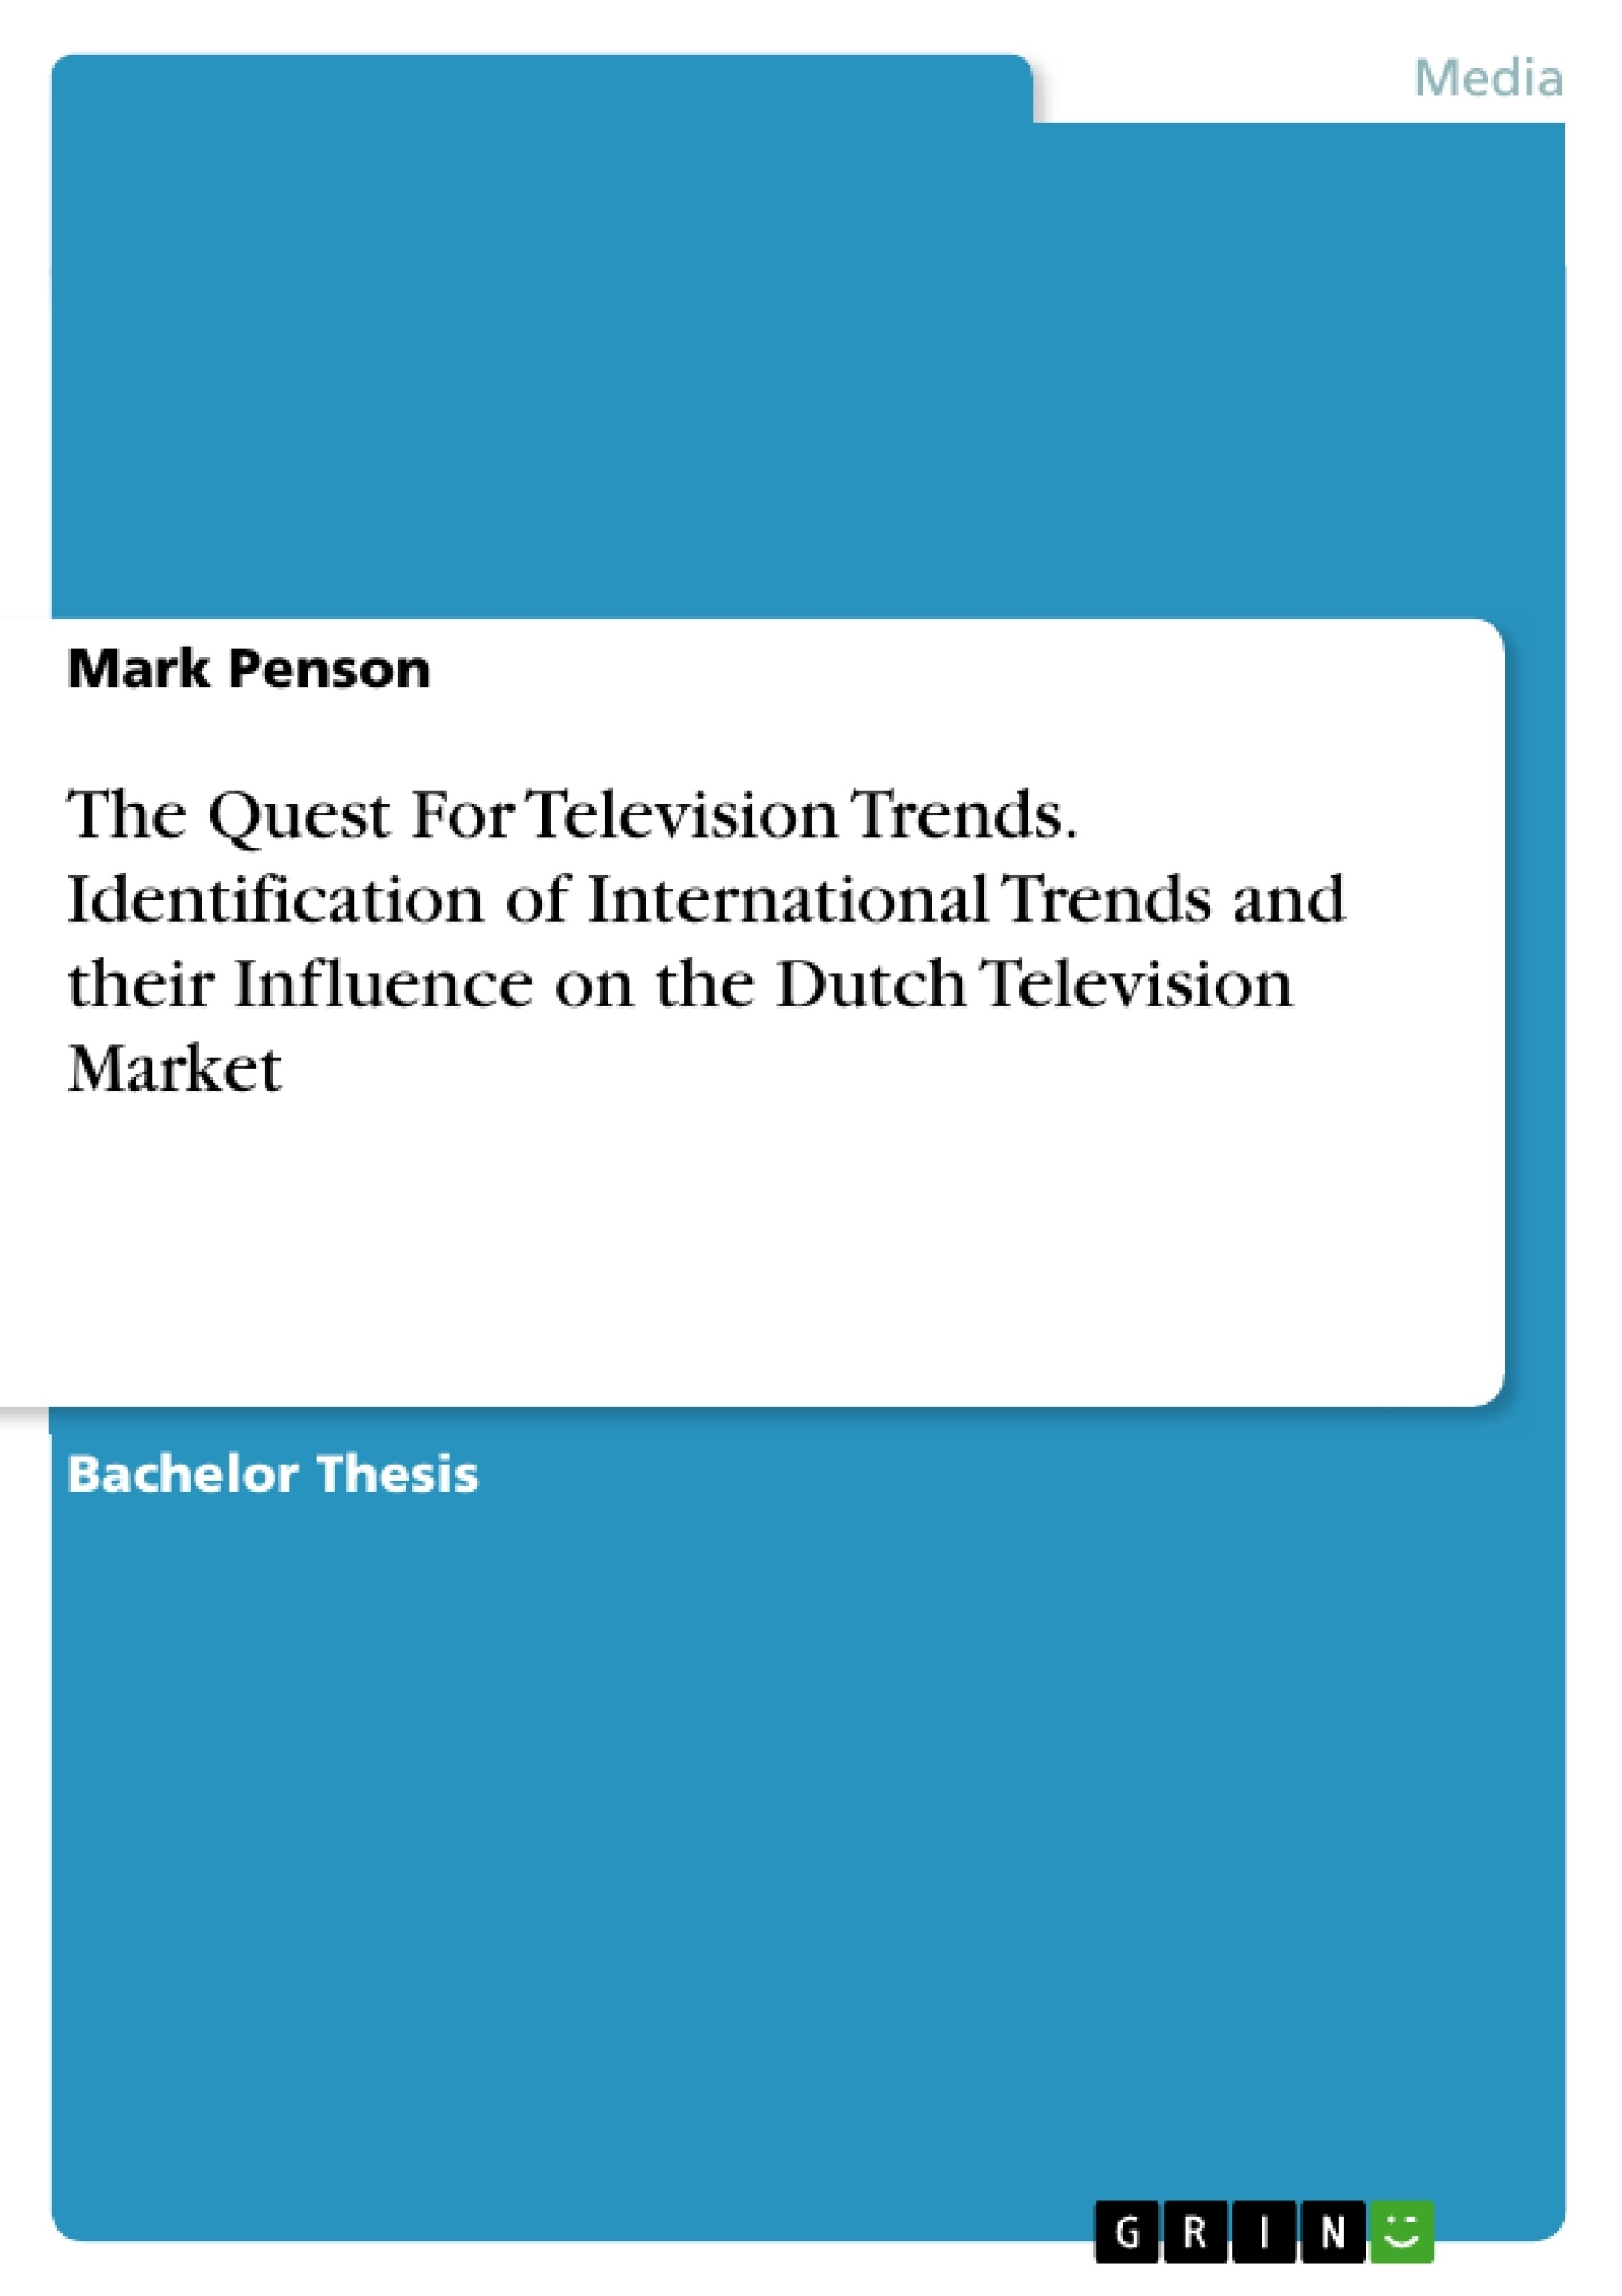 online marketing bachelor thesis